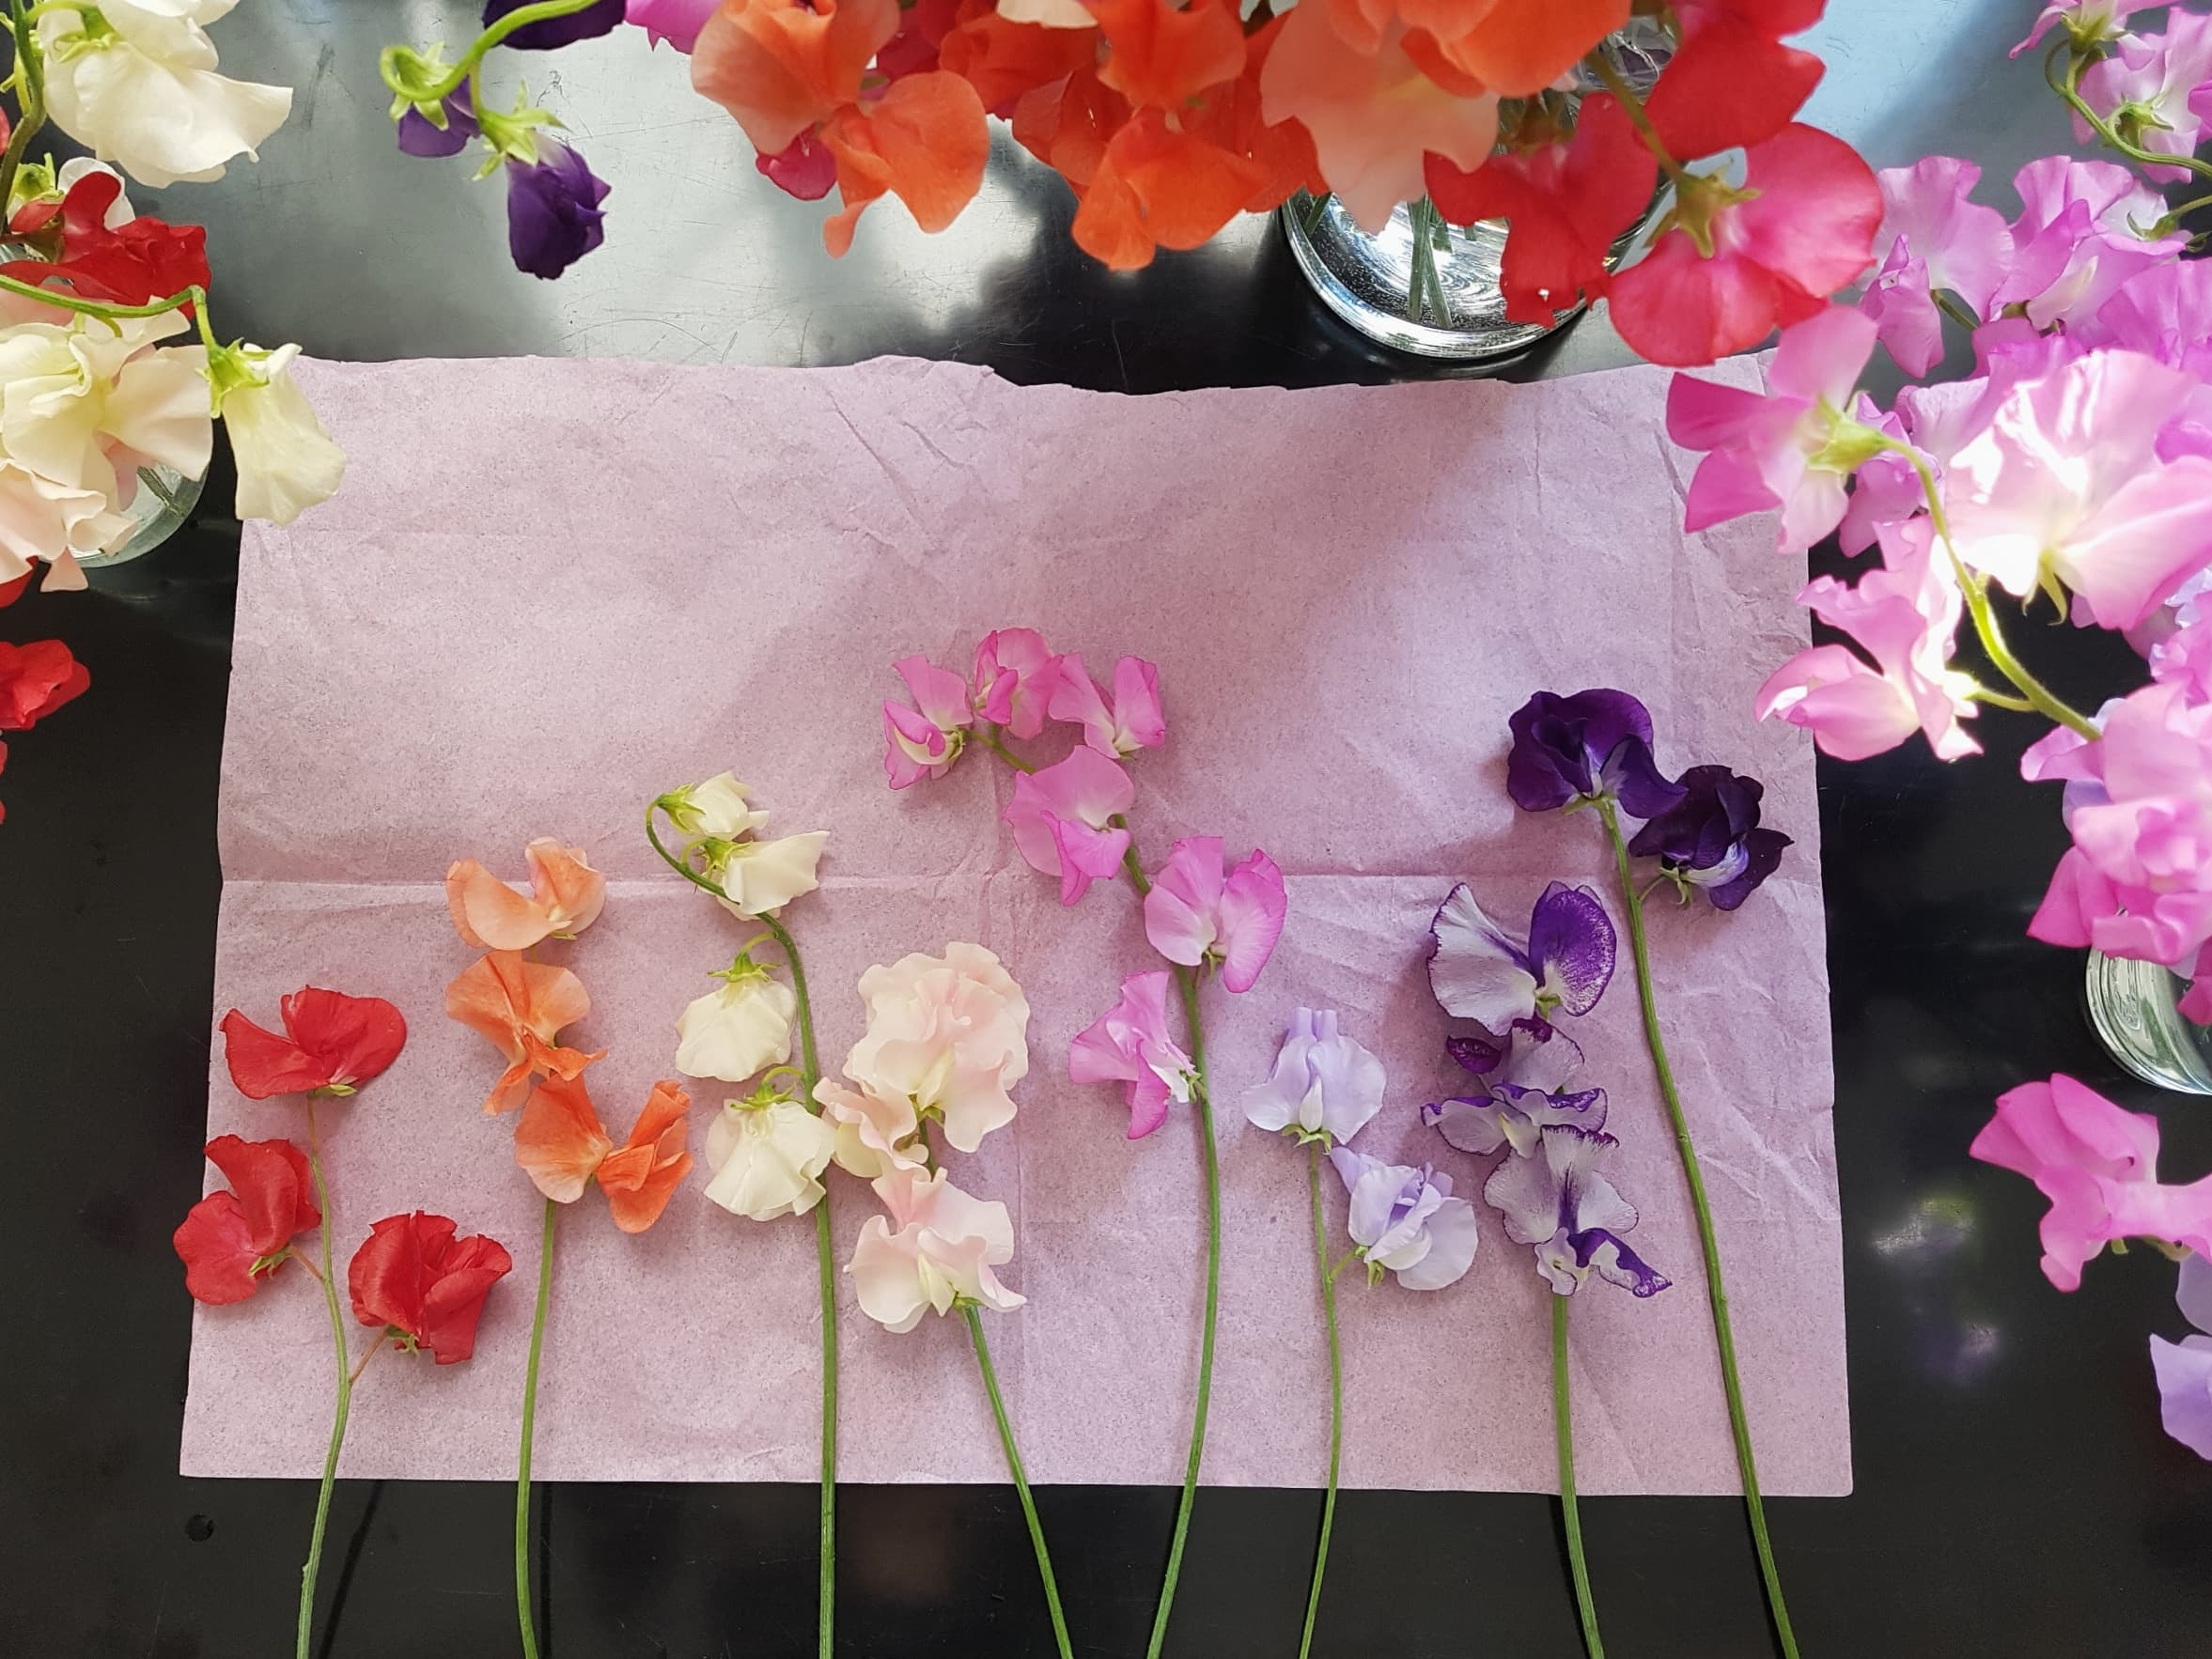 Nice bunch ethical floral design studio flower garden by Sula Somerset Compton Dundon organic cuttings sweet pea.jpg